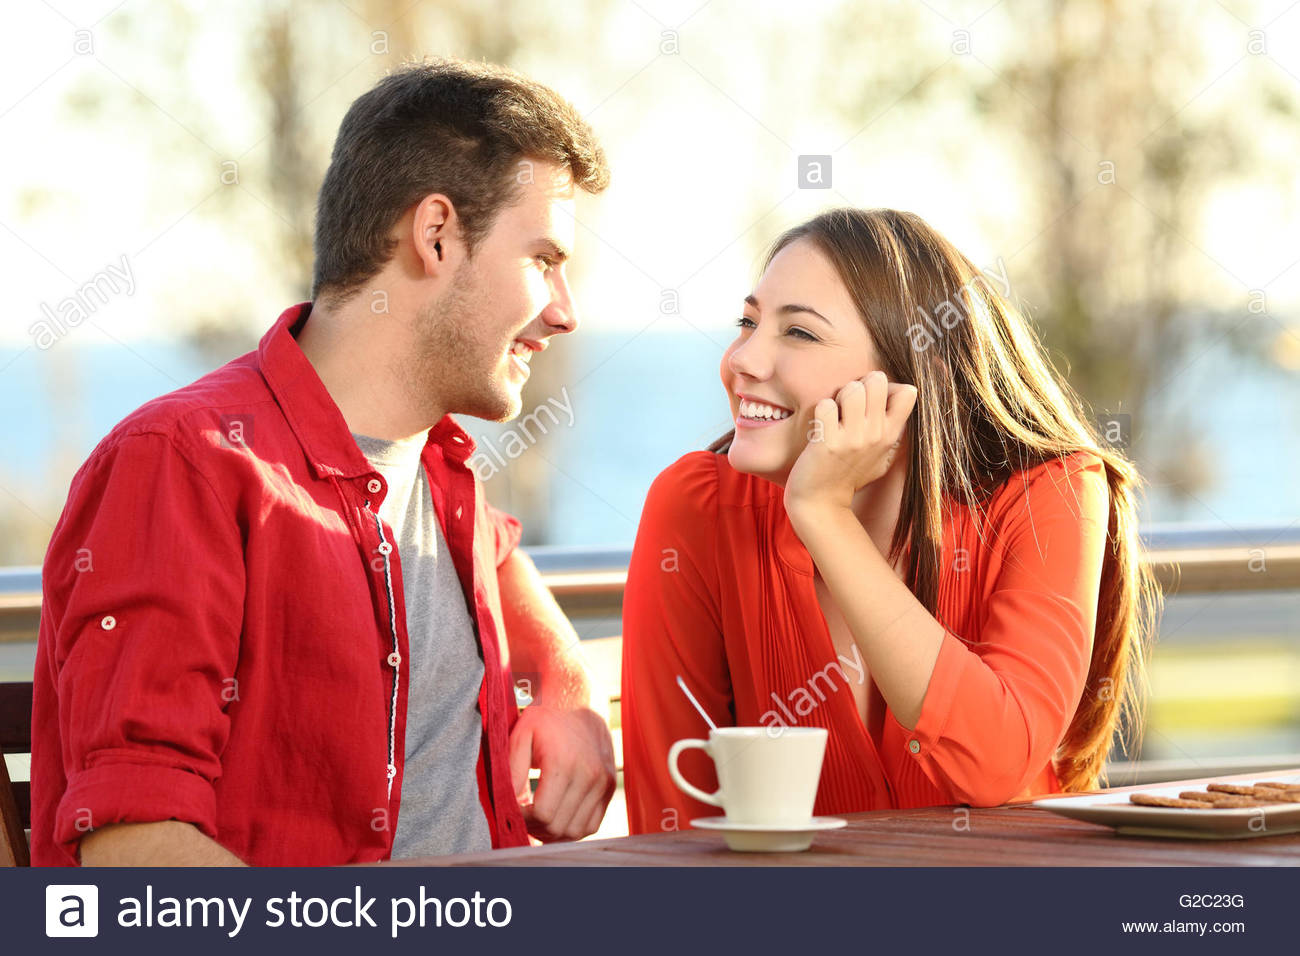 Long Distance Relationship? - Here Are The Tips How to Make it Works